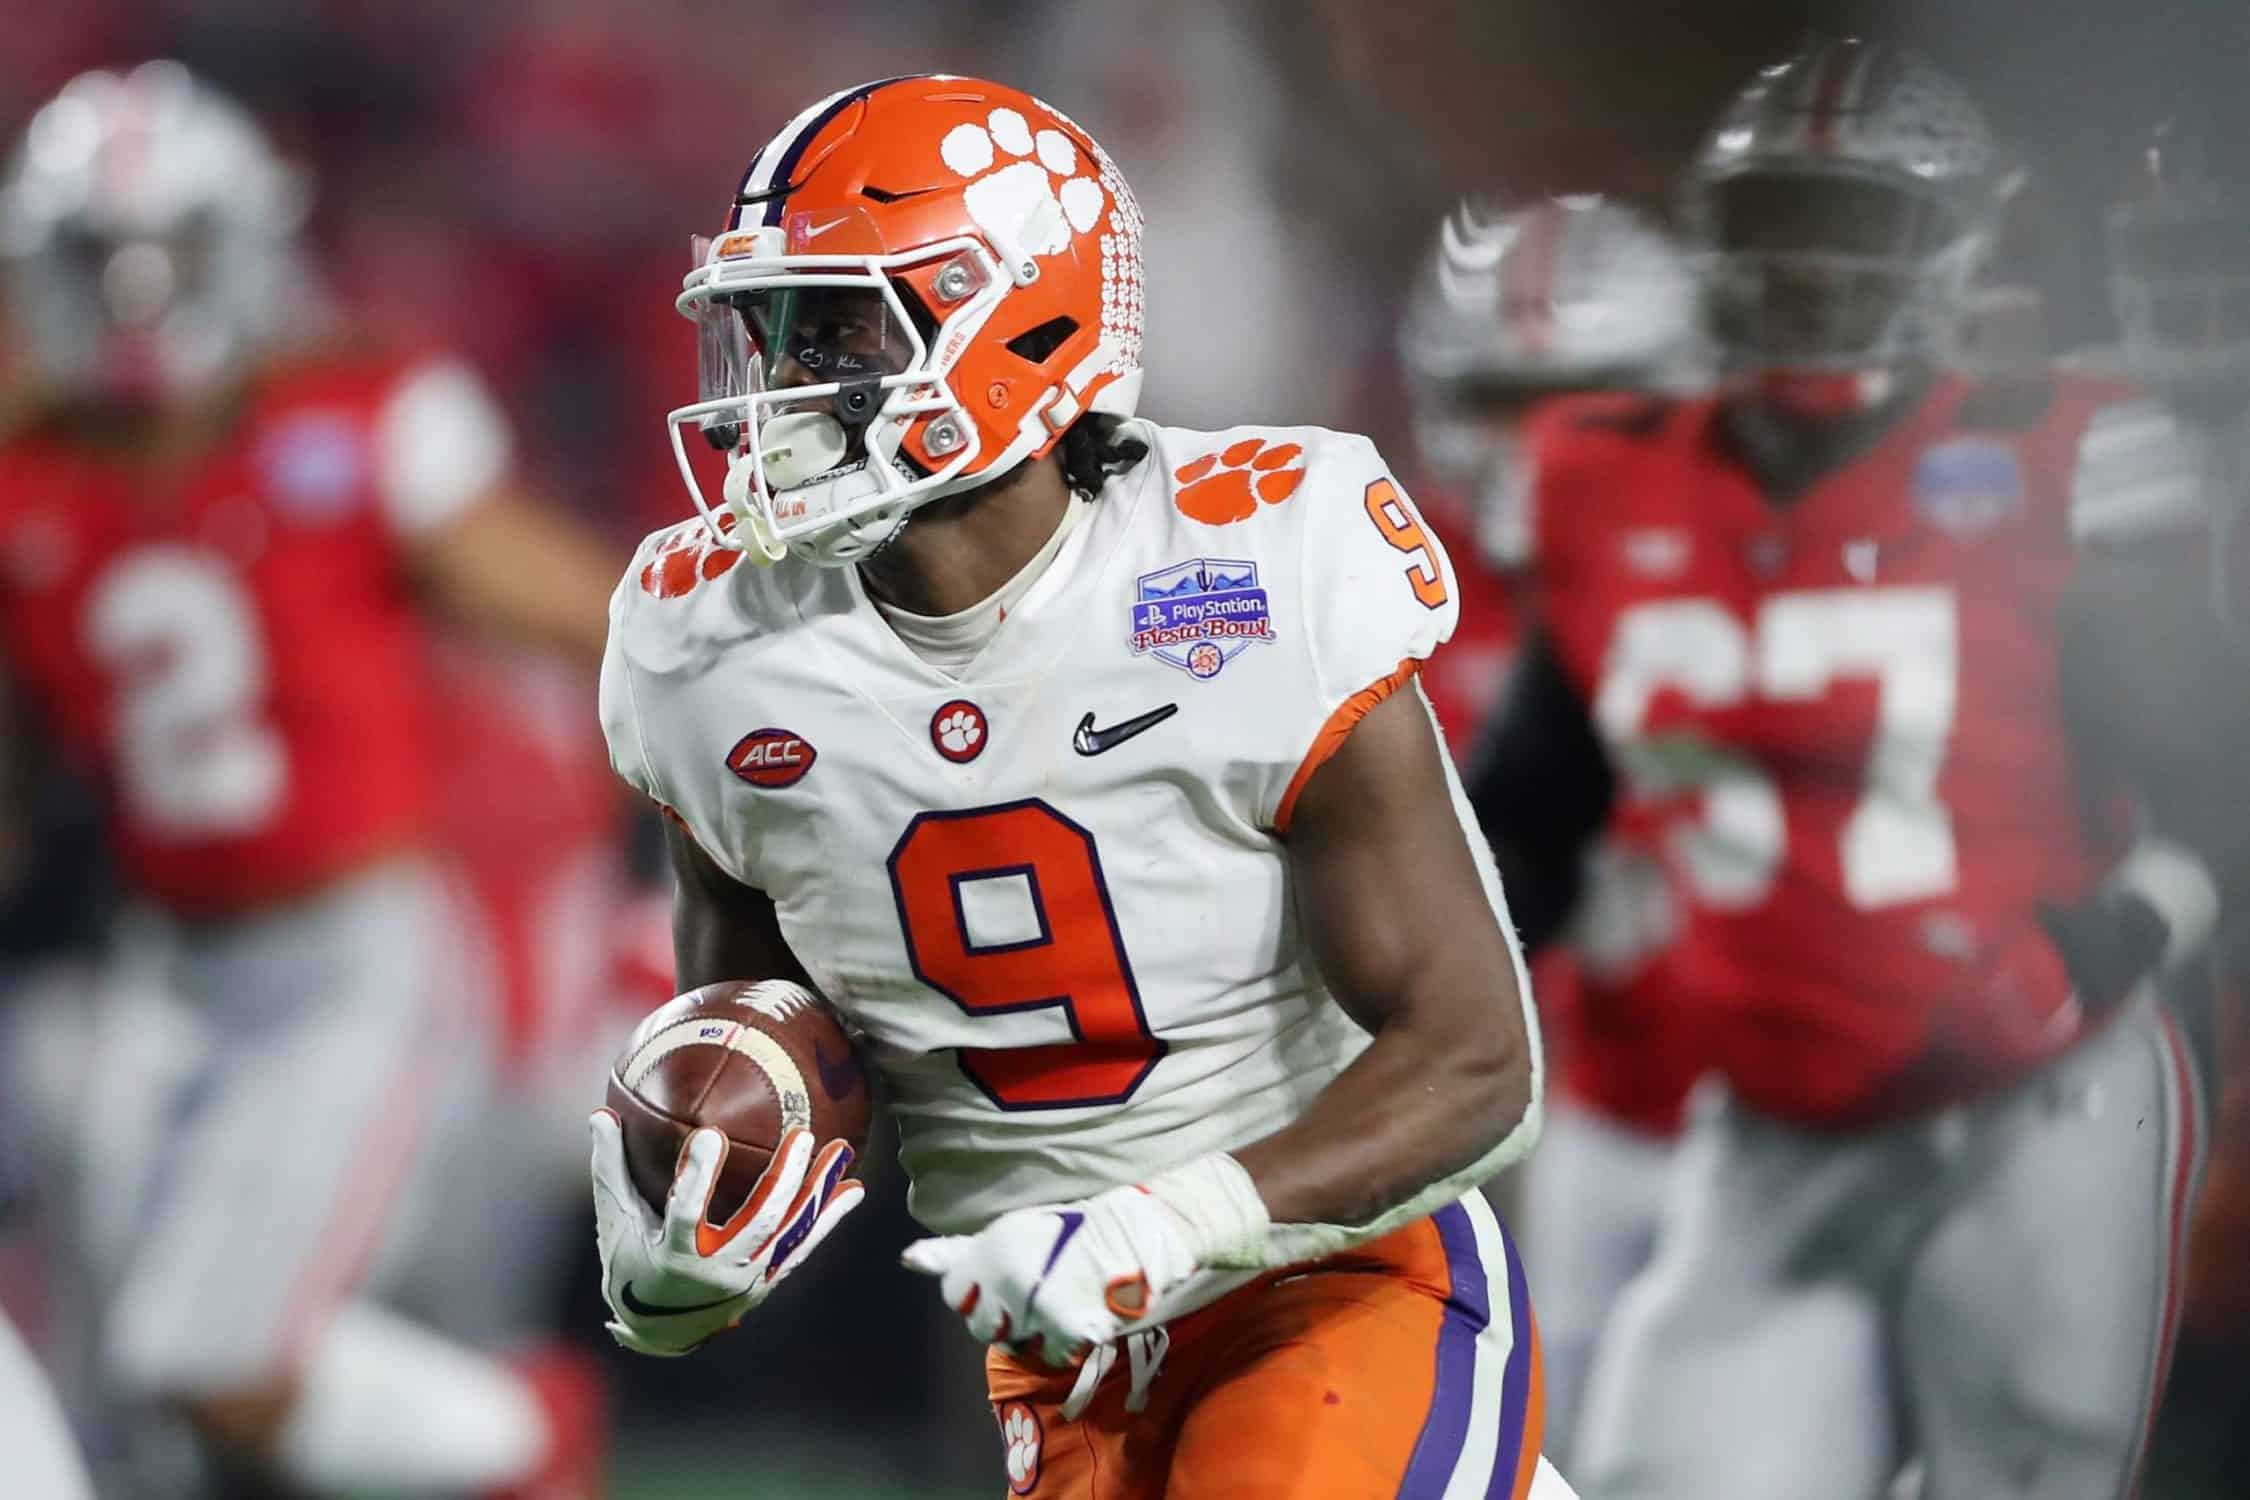 Three reasons why Travis Etienne's best comparison is Dalvin Cook